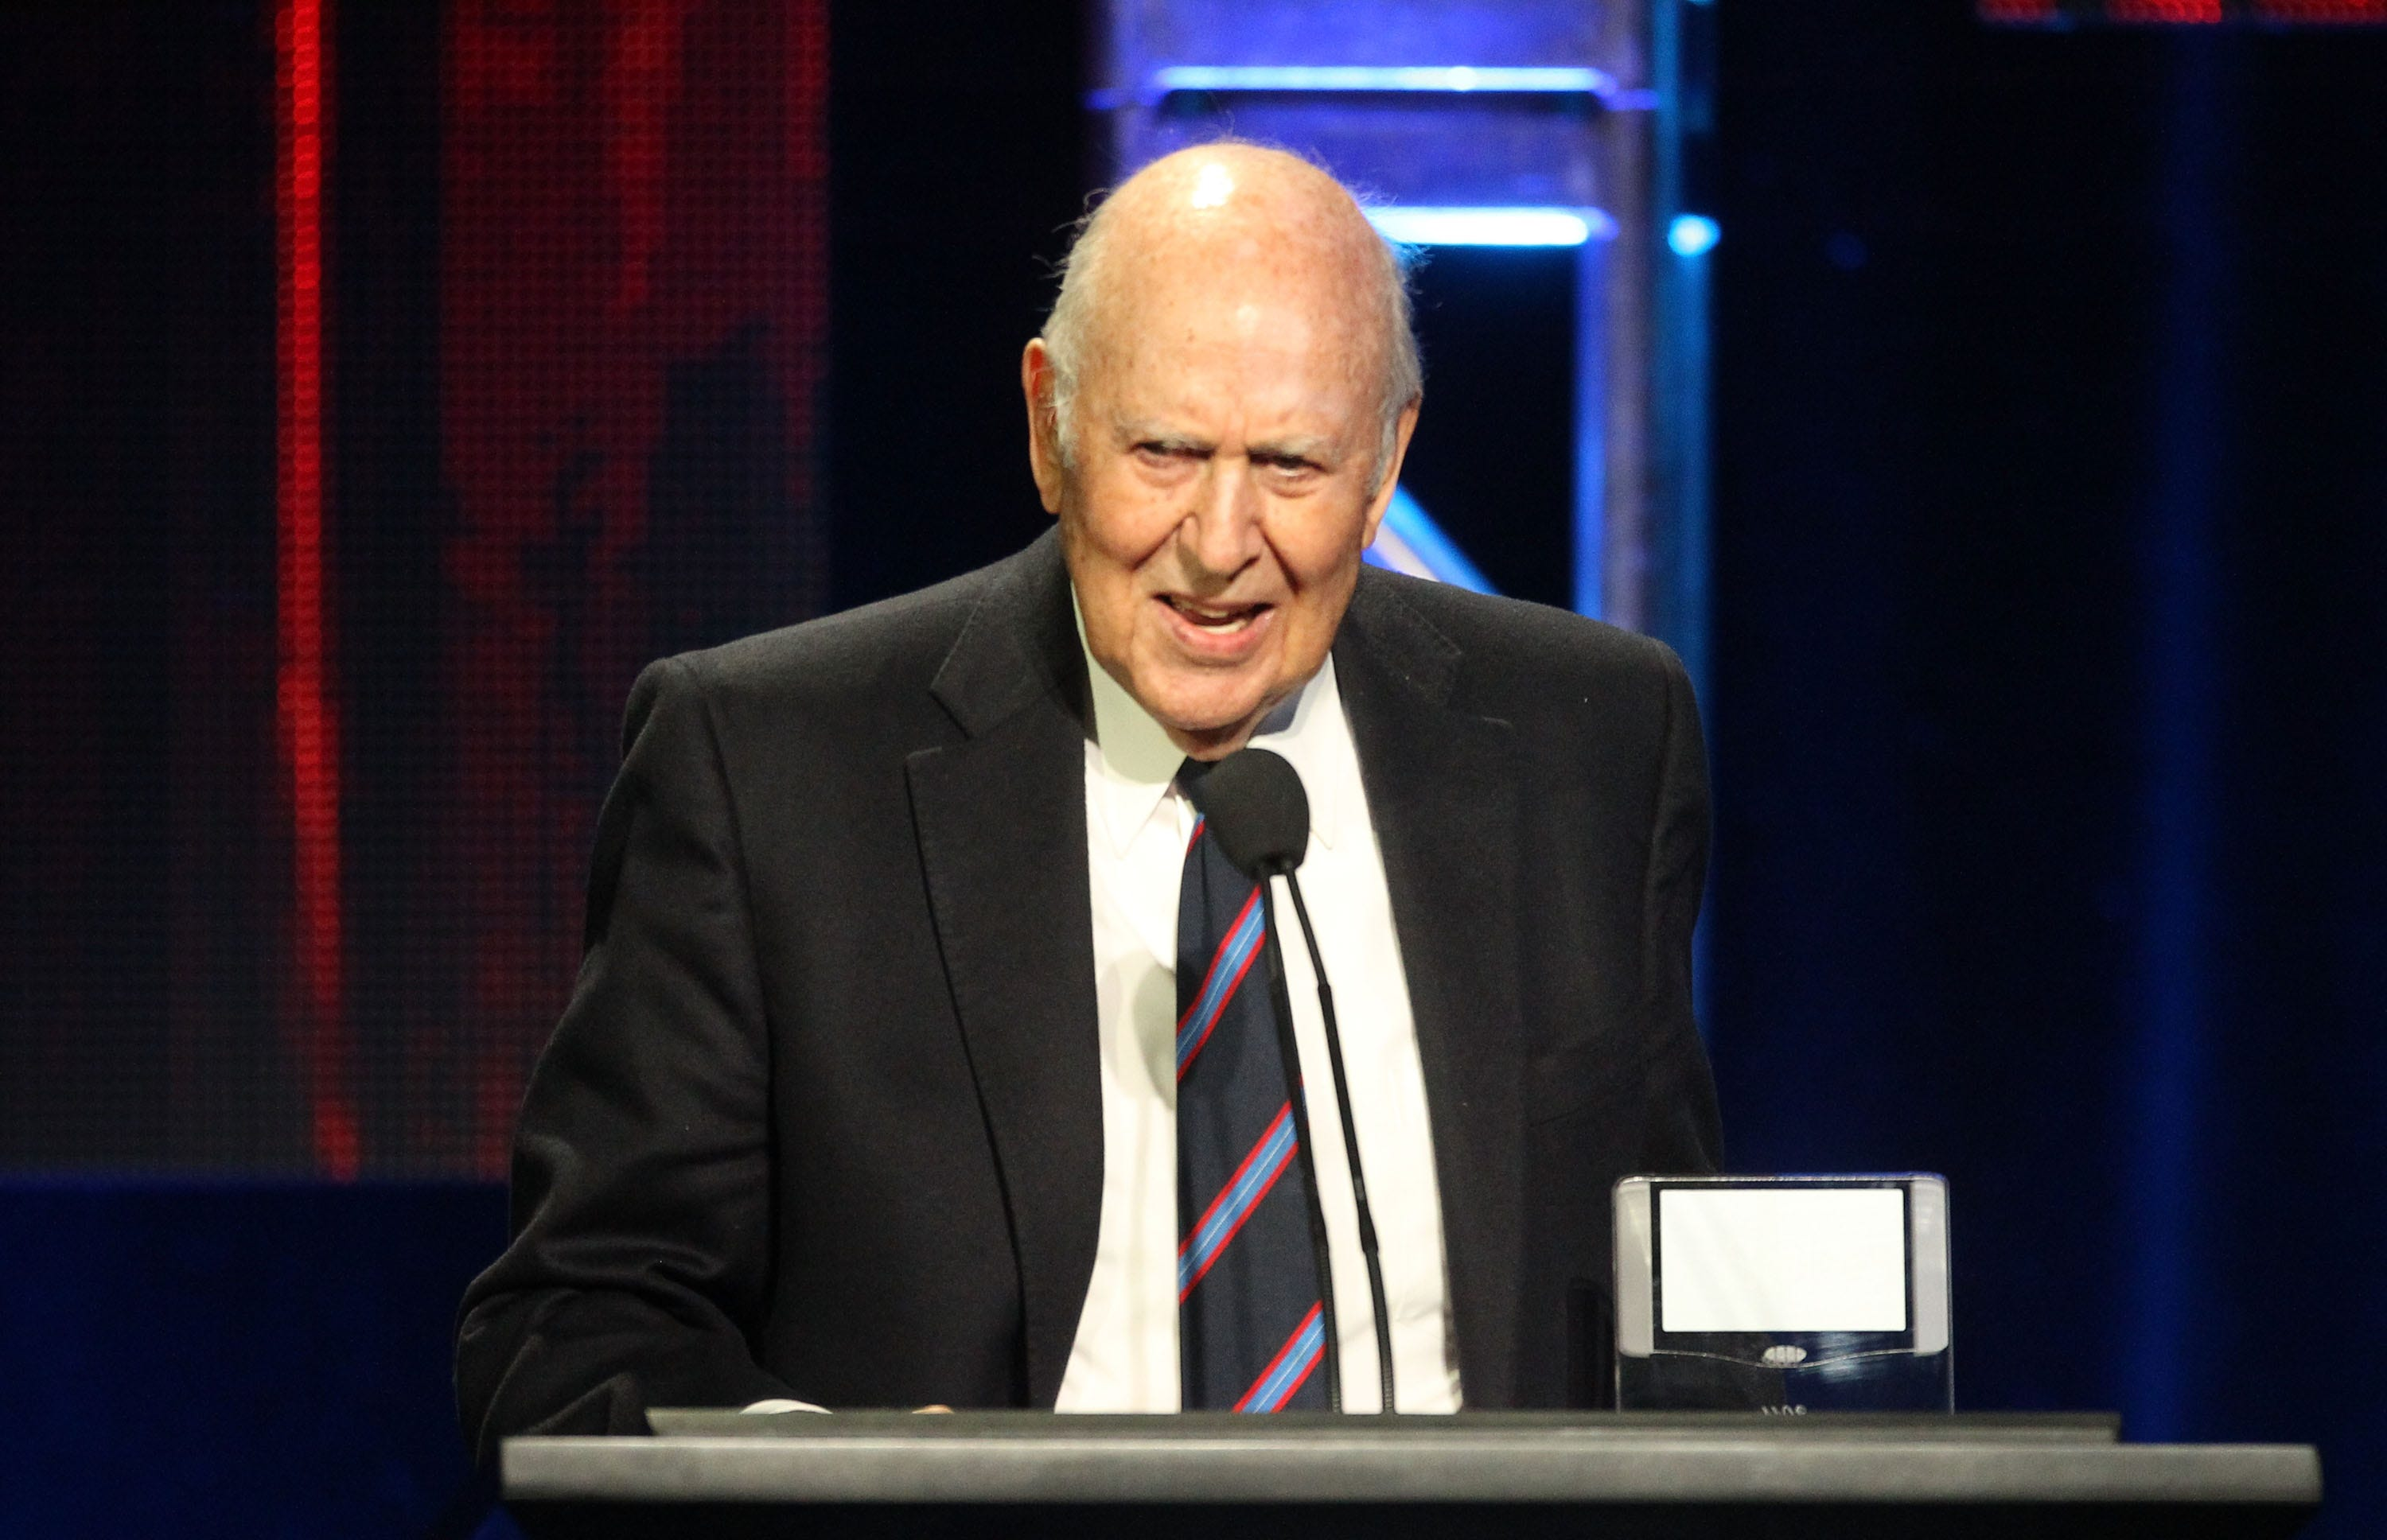 Remembering Carl Reiner: His best quotes on show business, eulogies, friend Mel Brooks